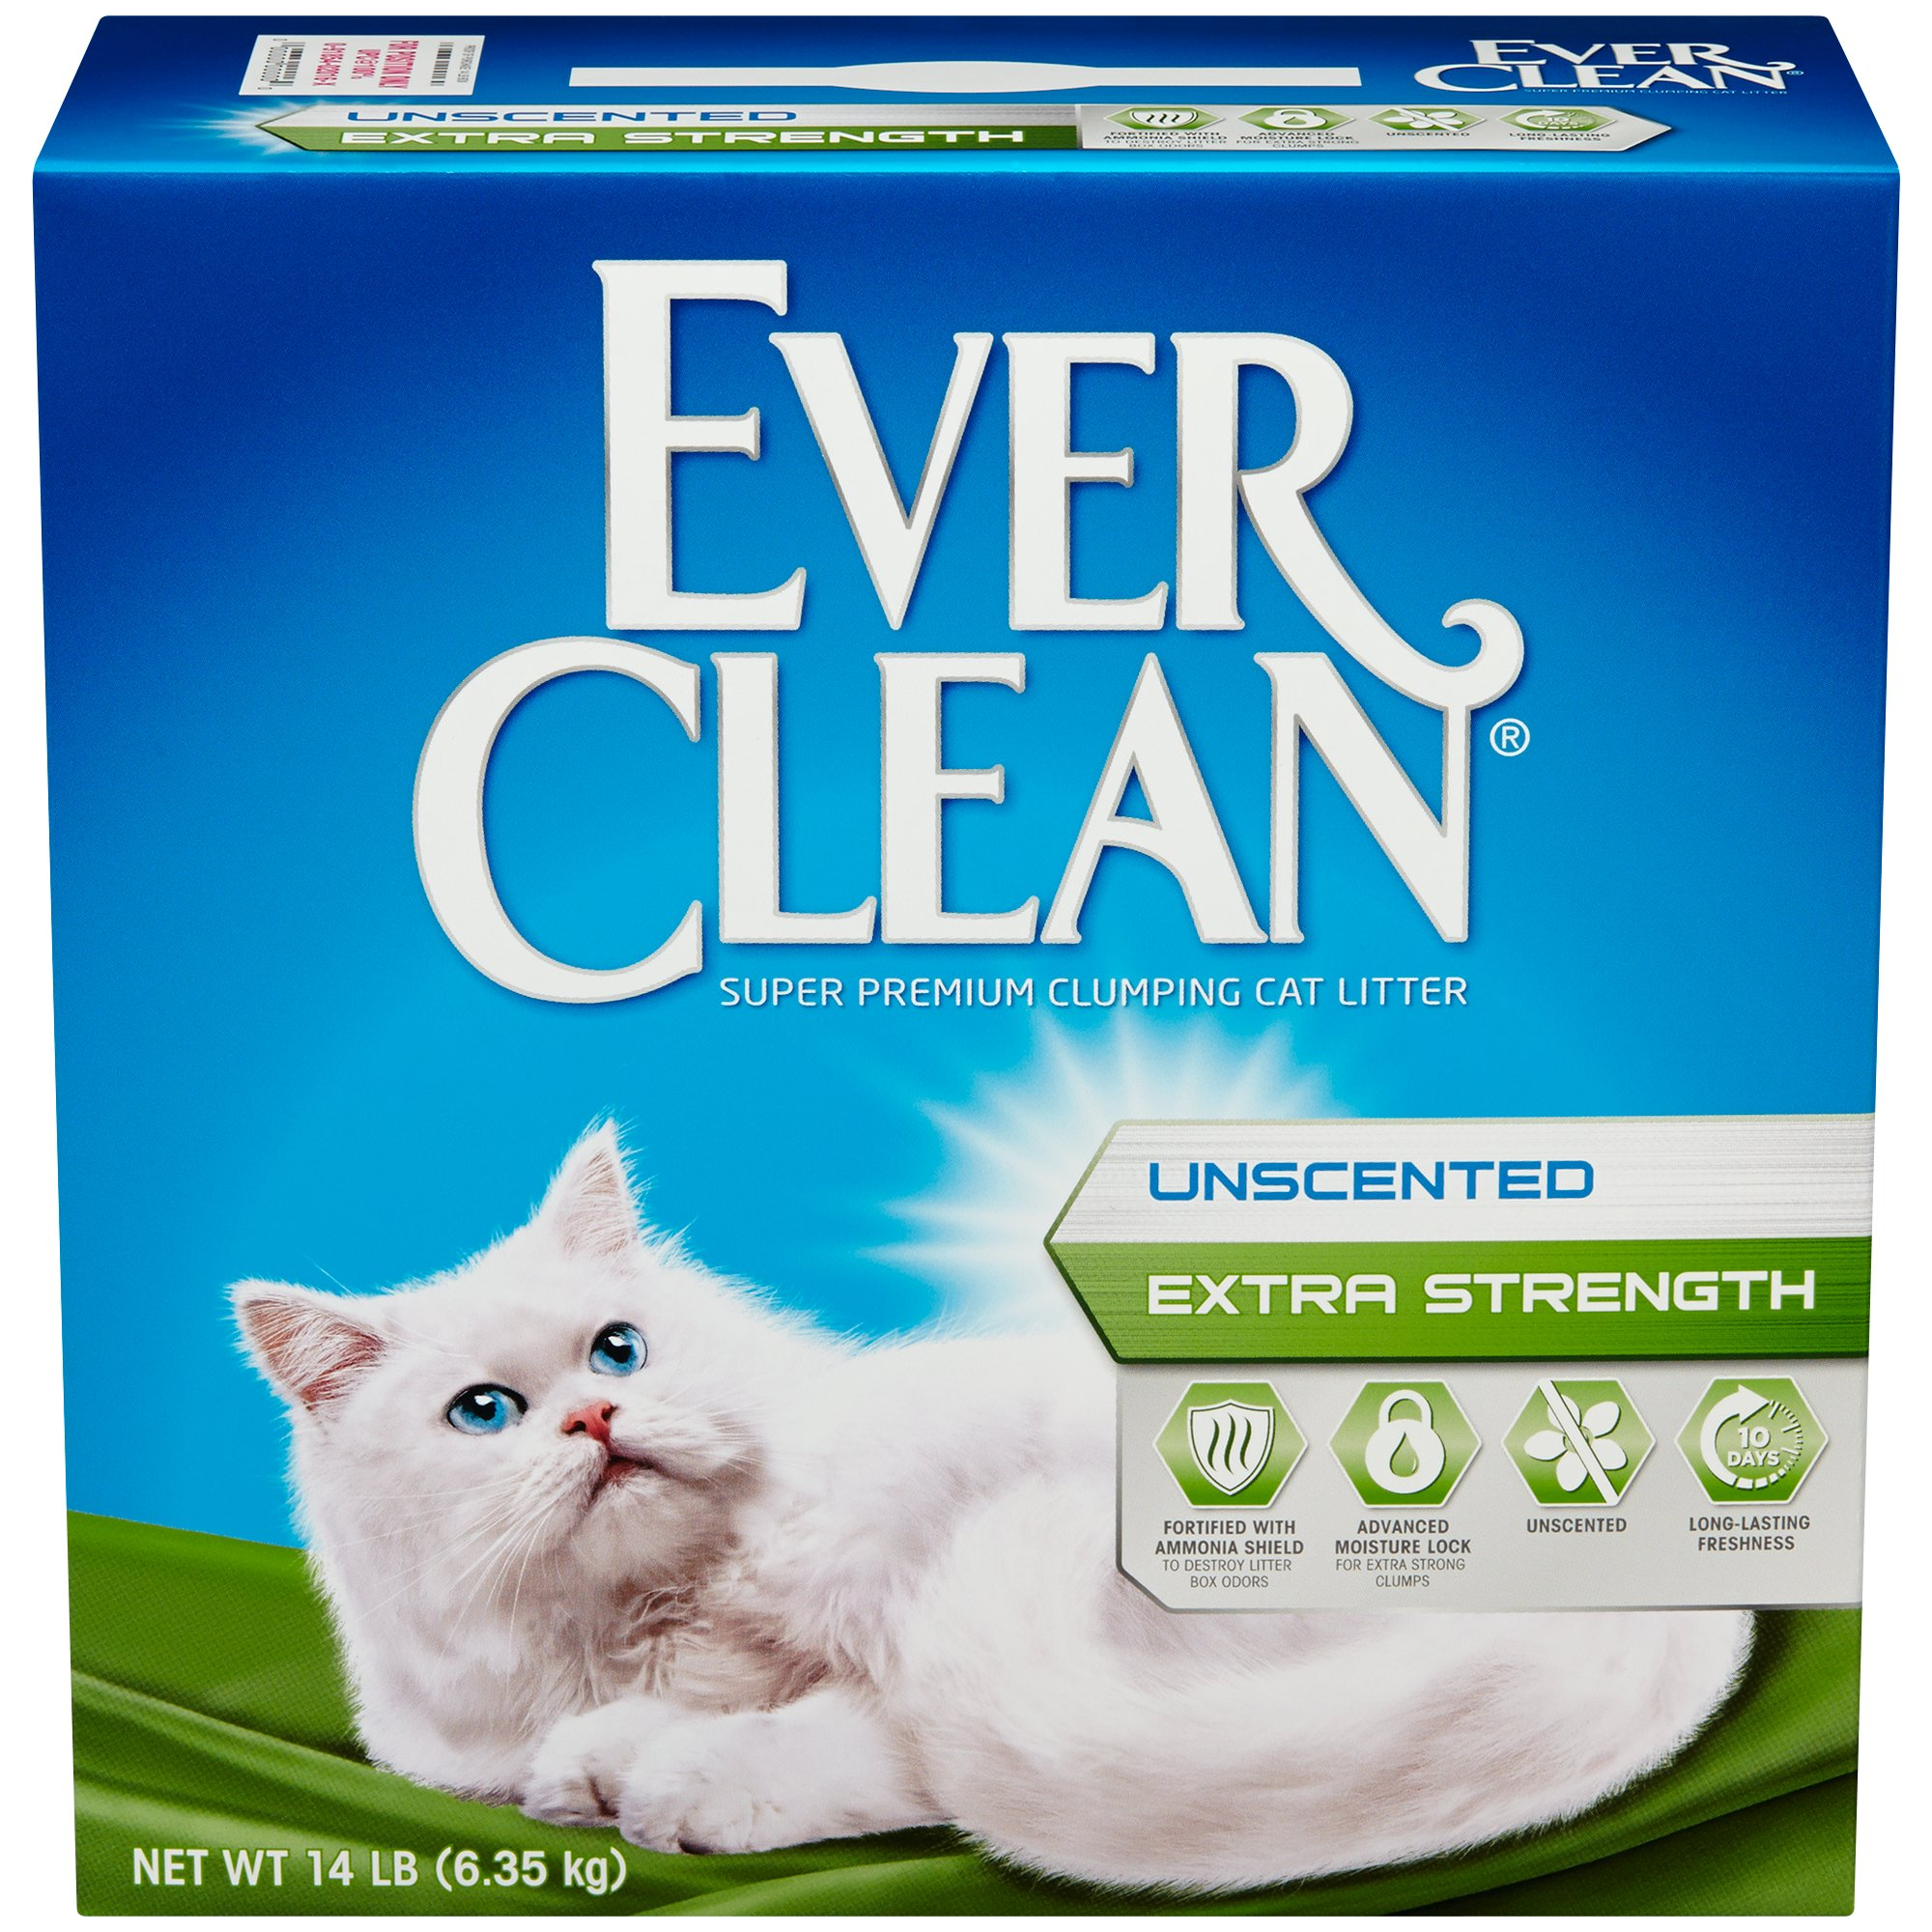 Ever Clean Unscented Extra Strength Premium Clumping Cat Litter